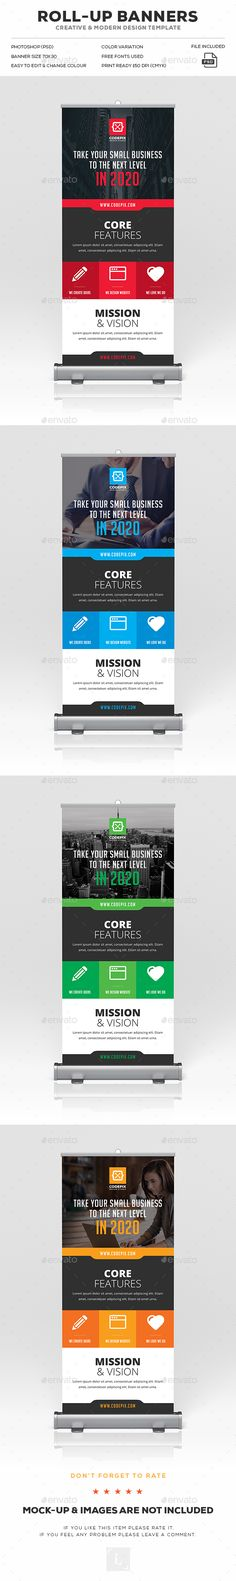 Roll-Up Banner Ads Design Template - Signage Print Template PSD. Download here…